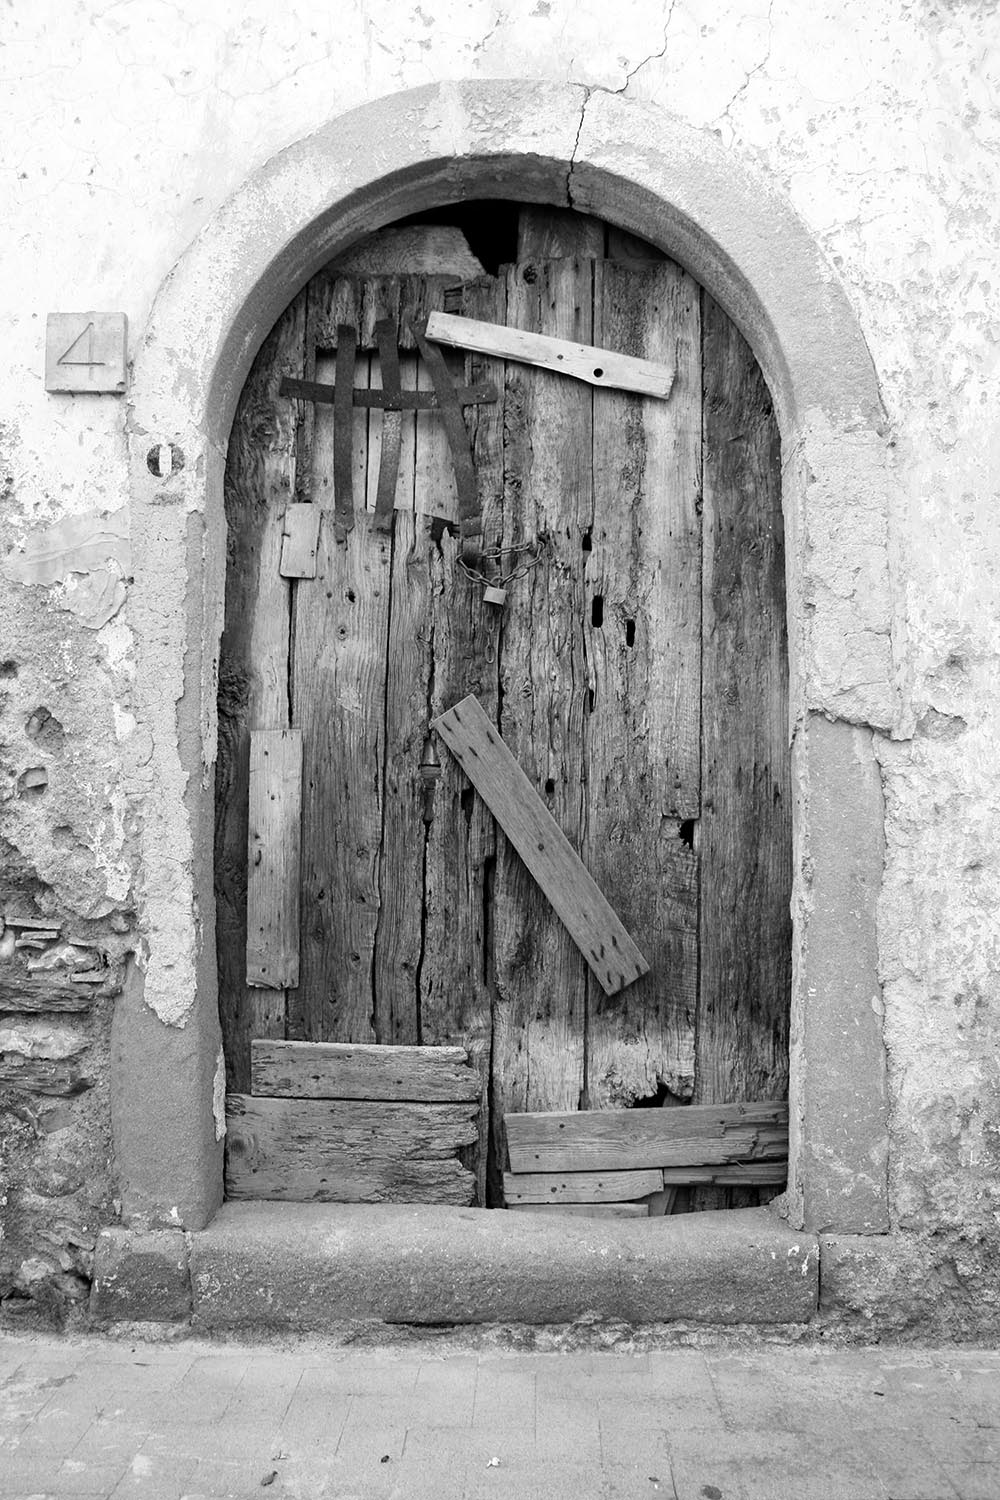 Black and white photo of an old wooden door nailed shut with plywood.